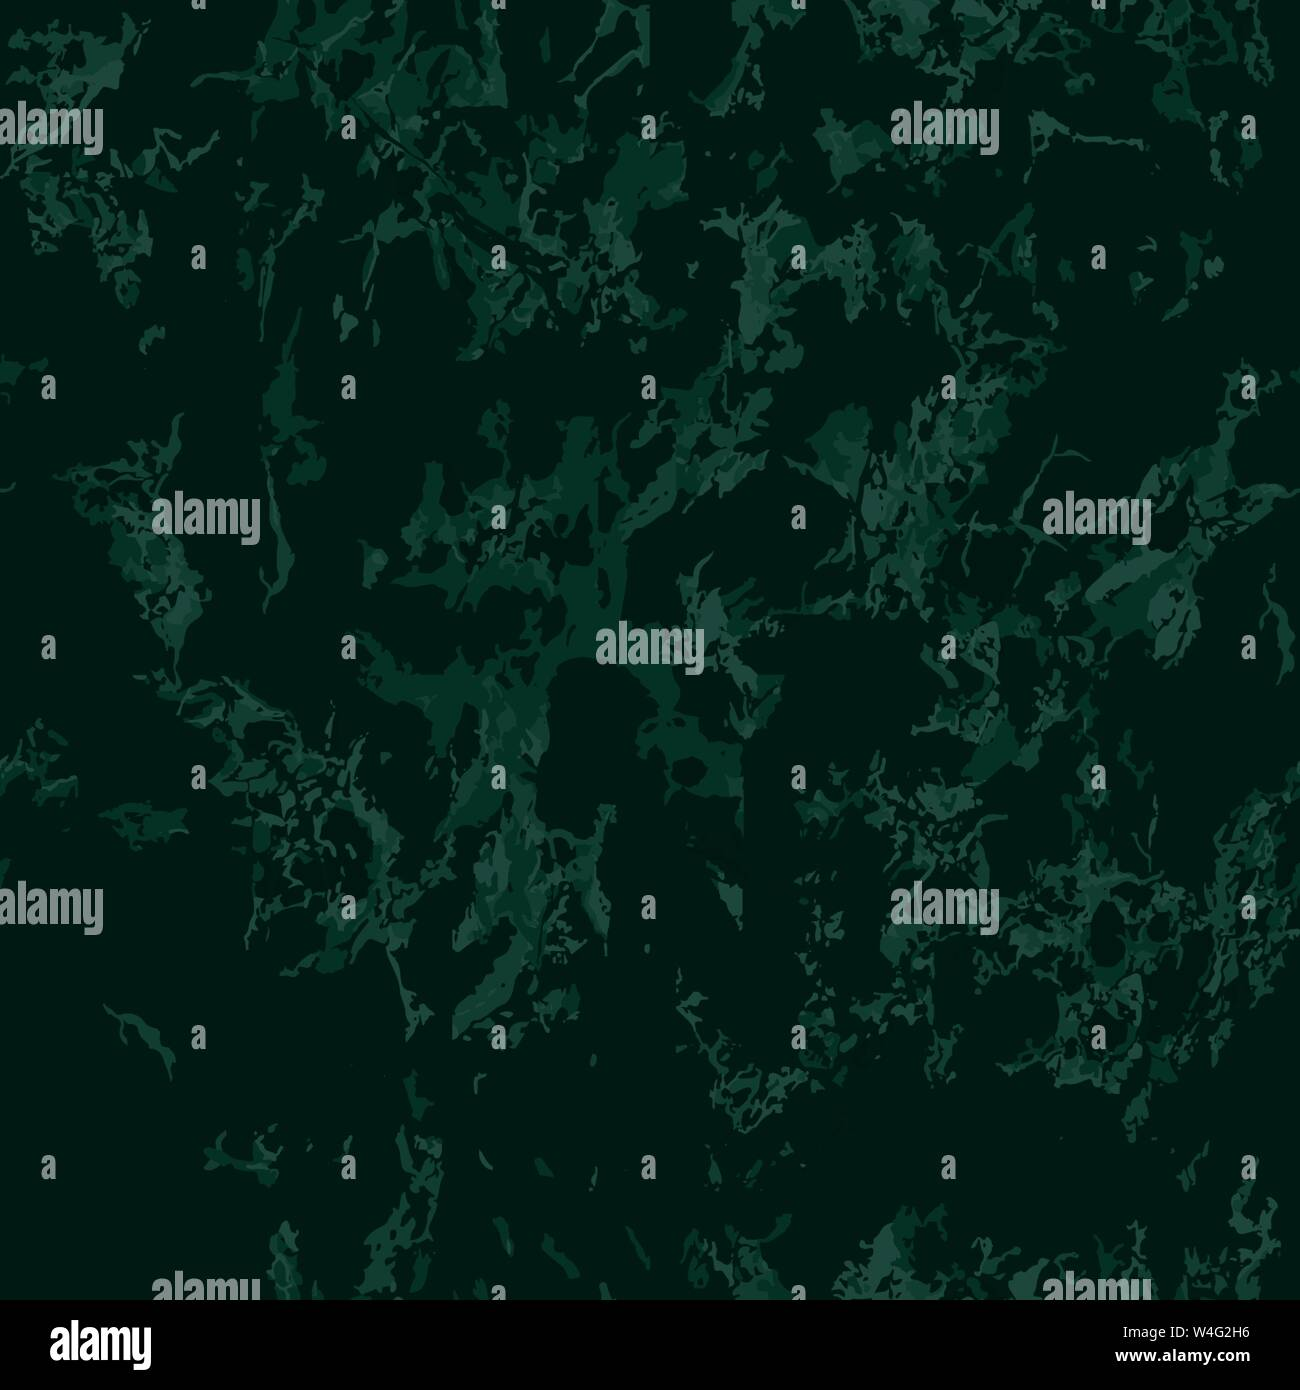 Green Marble Texture Background Seamless Pattern Stock Vector Image Art Alamy